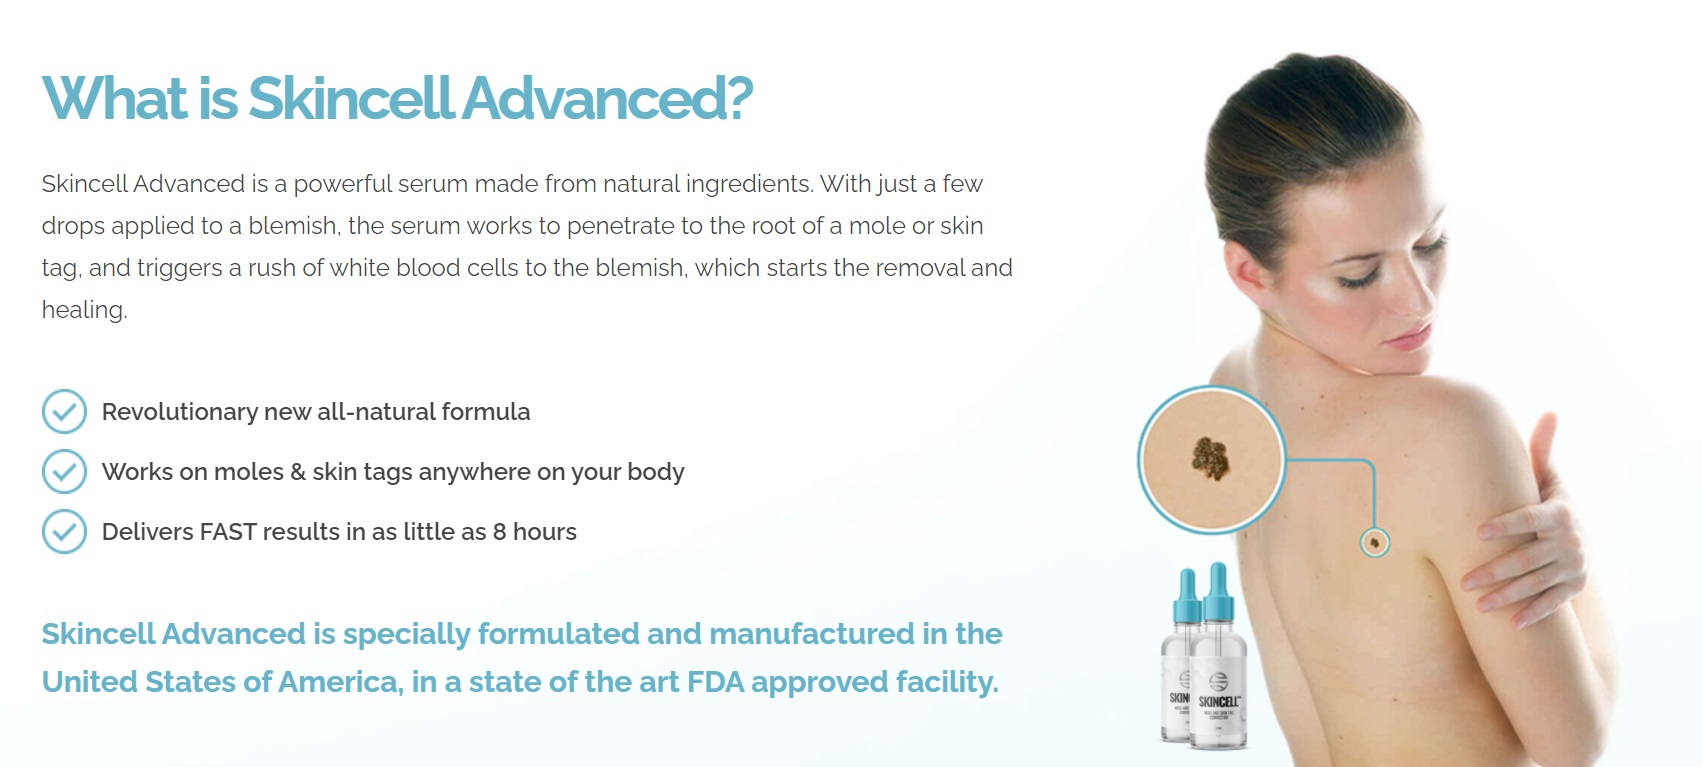 SkinCell Advanced Introduction